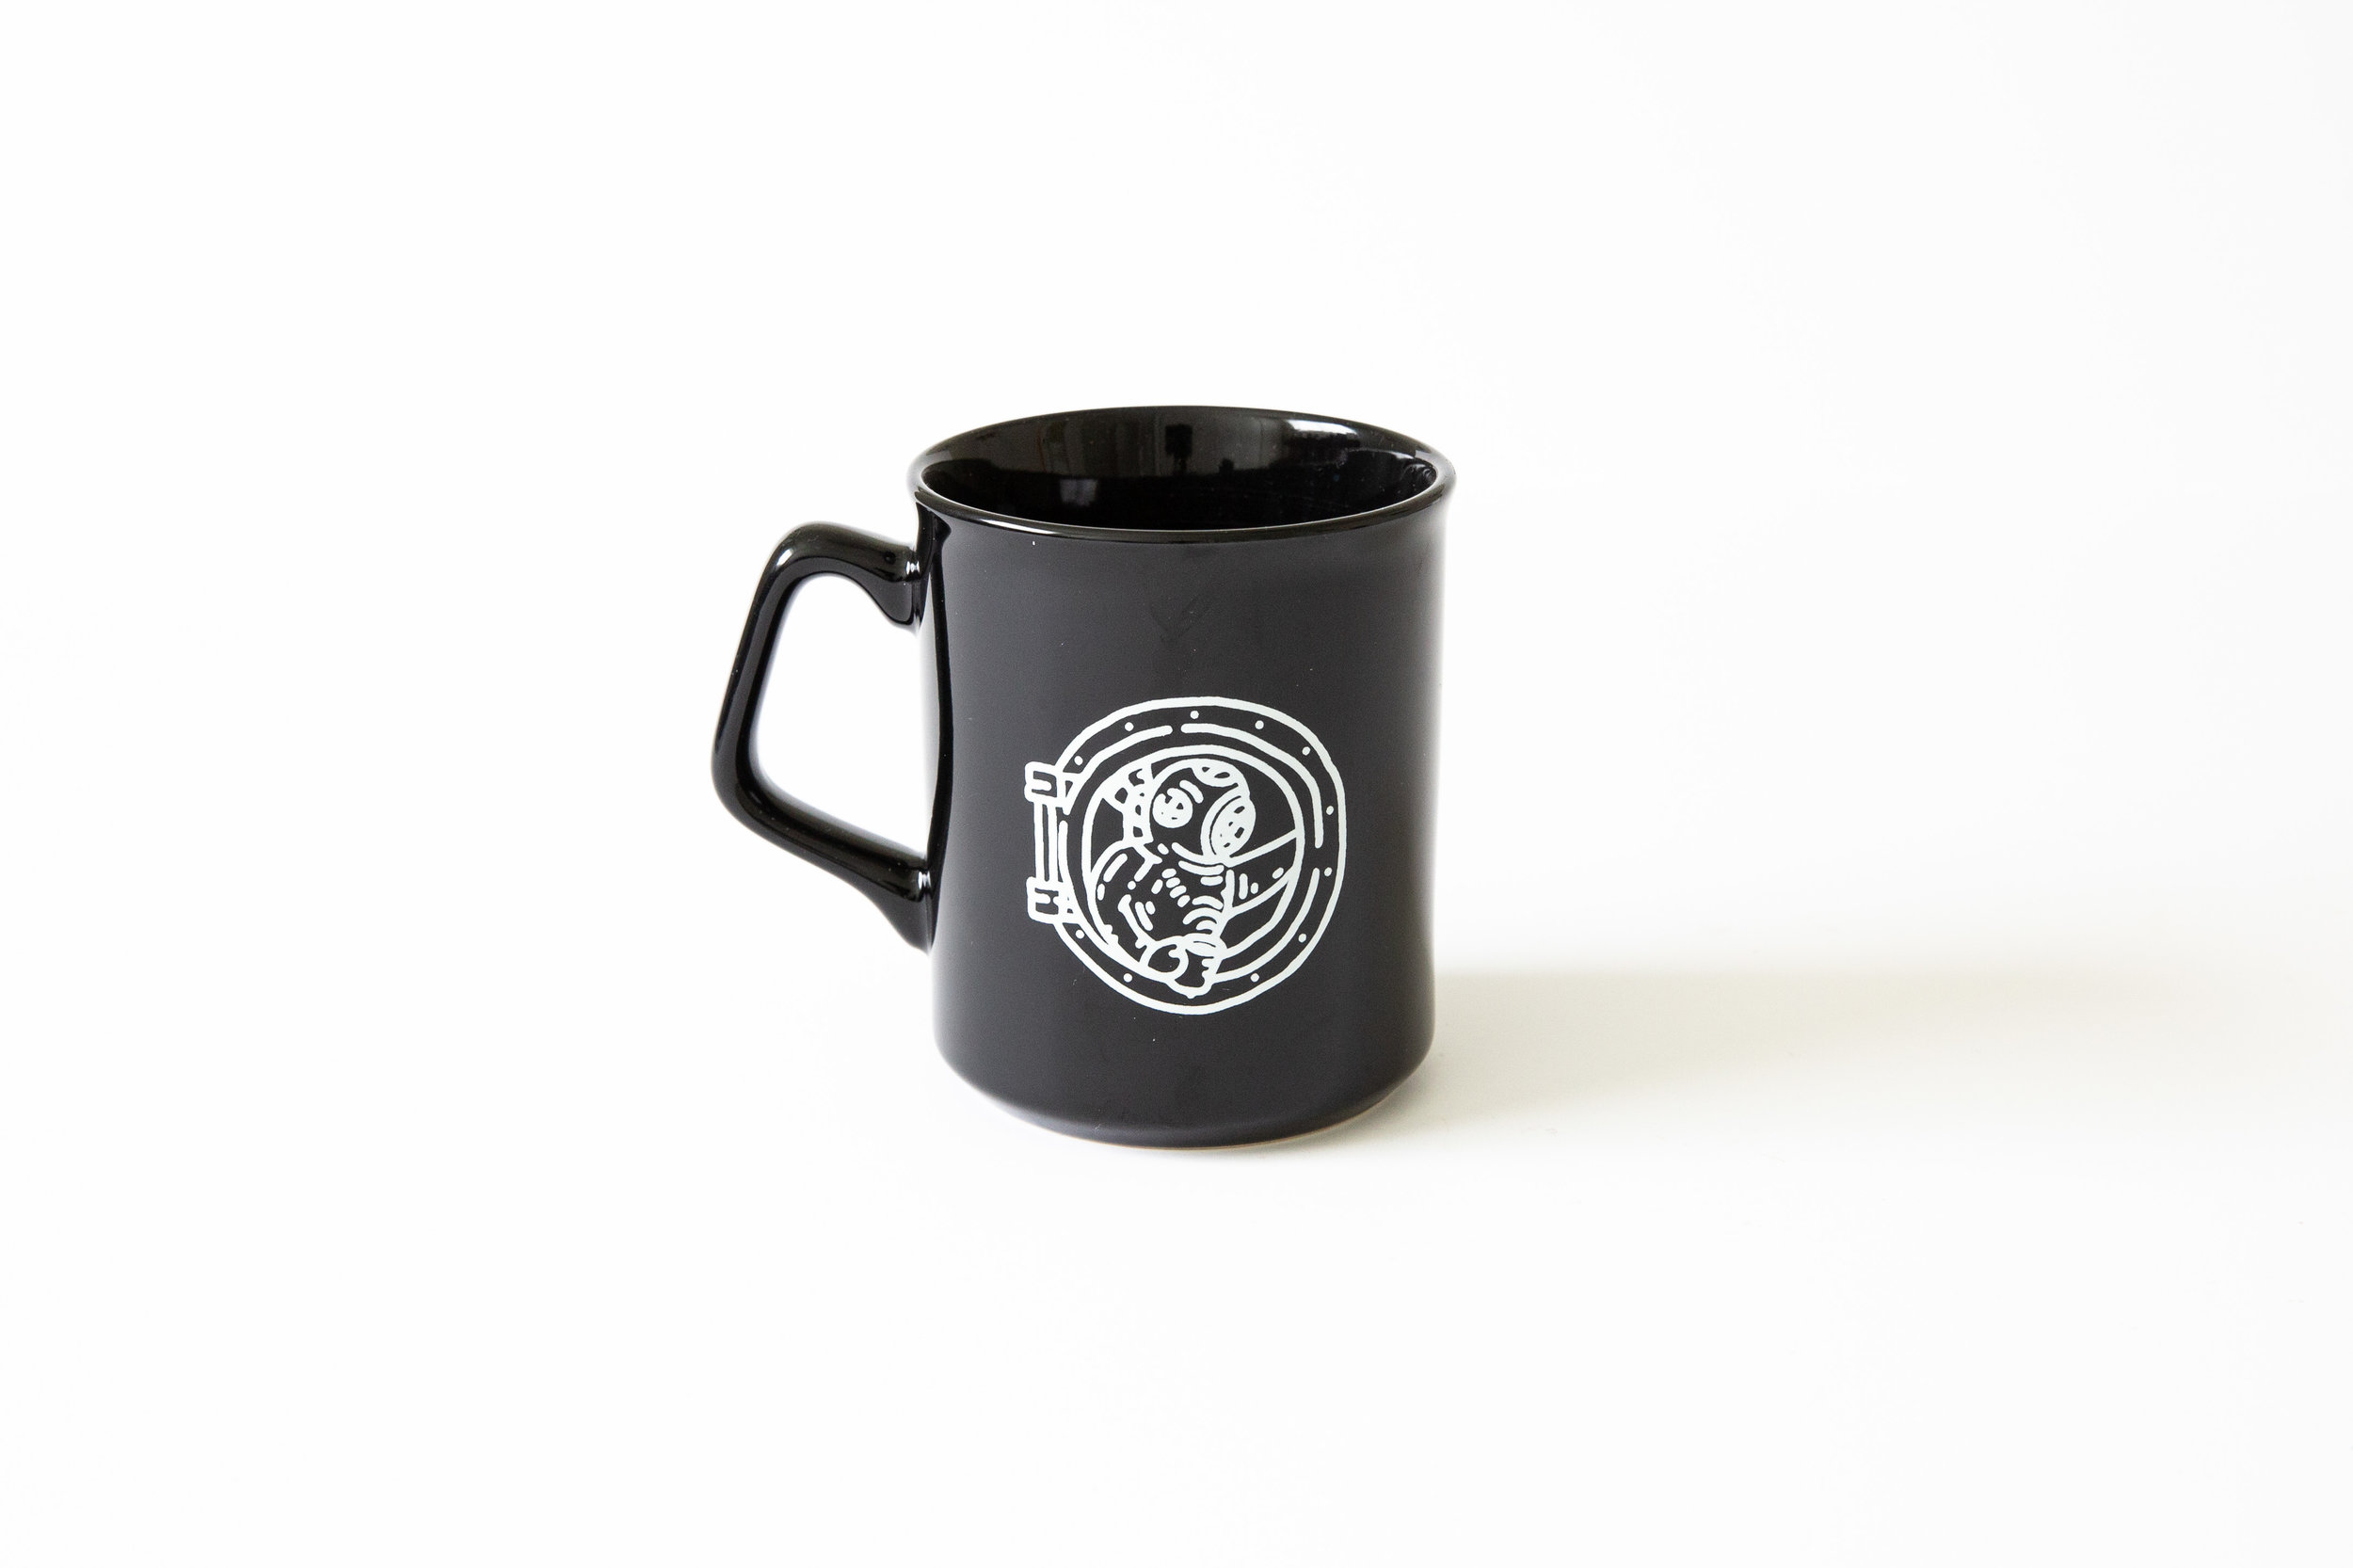 East Pole-Black Mug 1.jpg